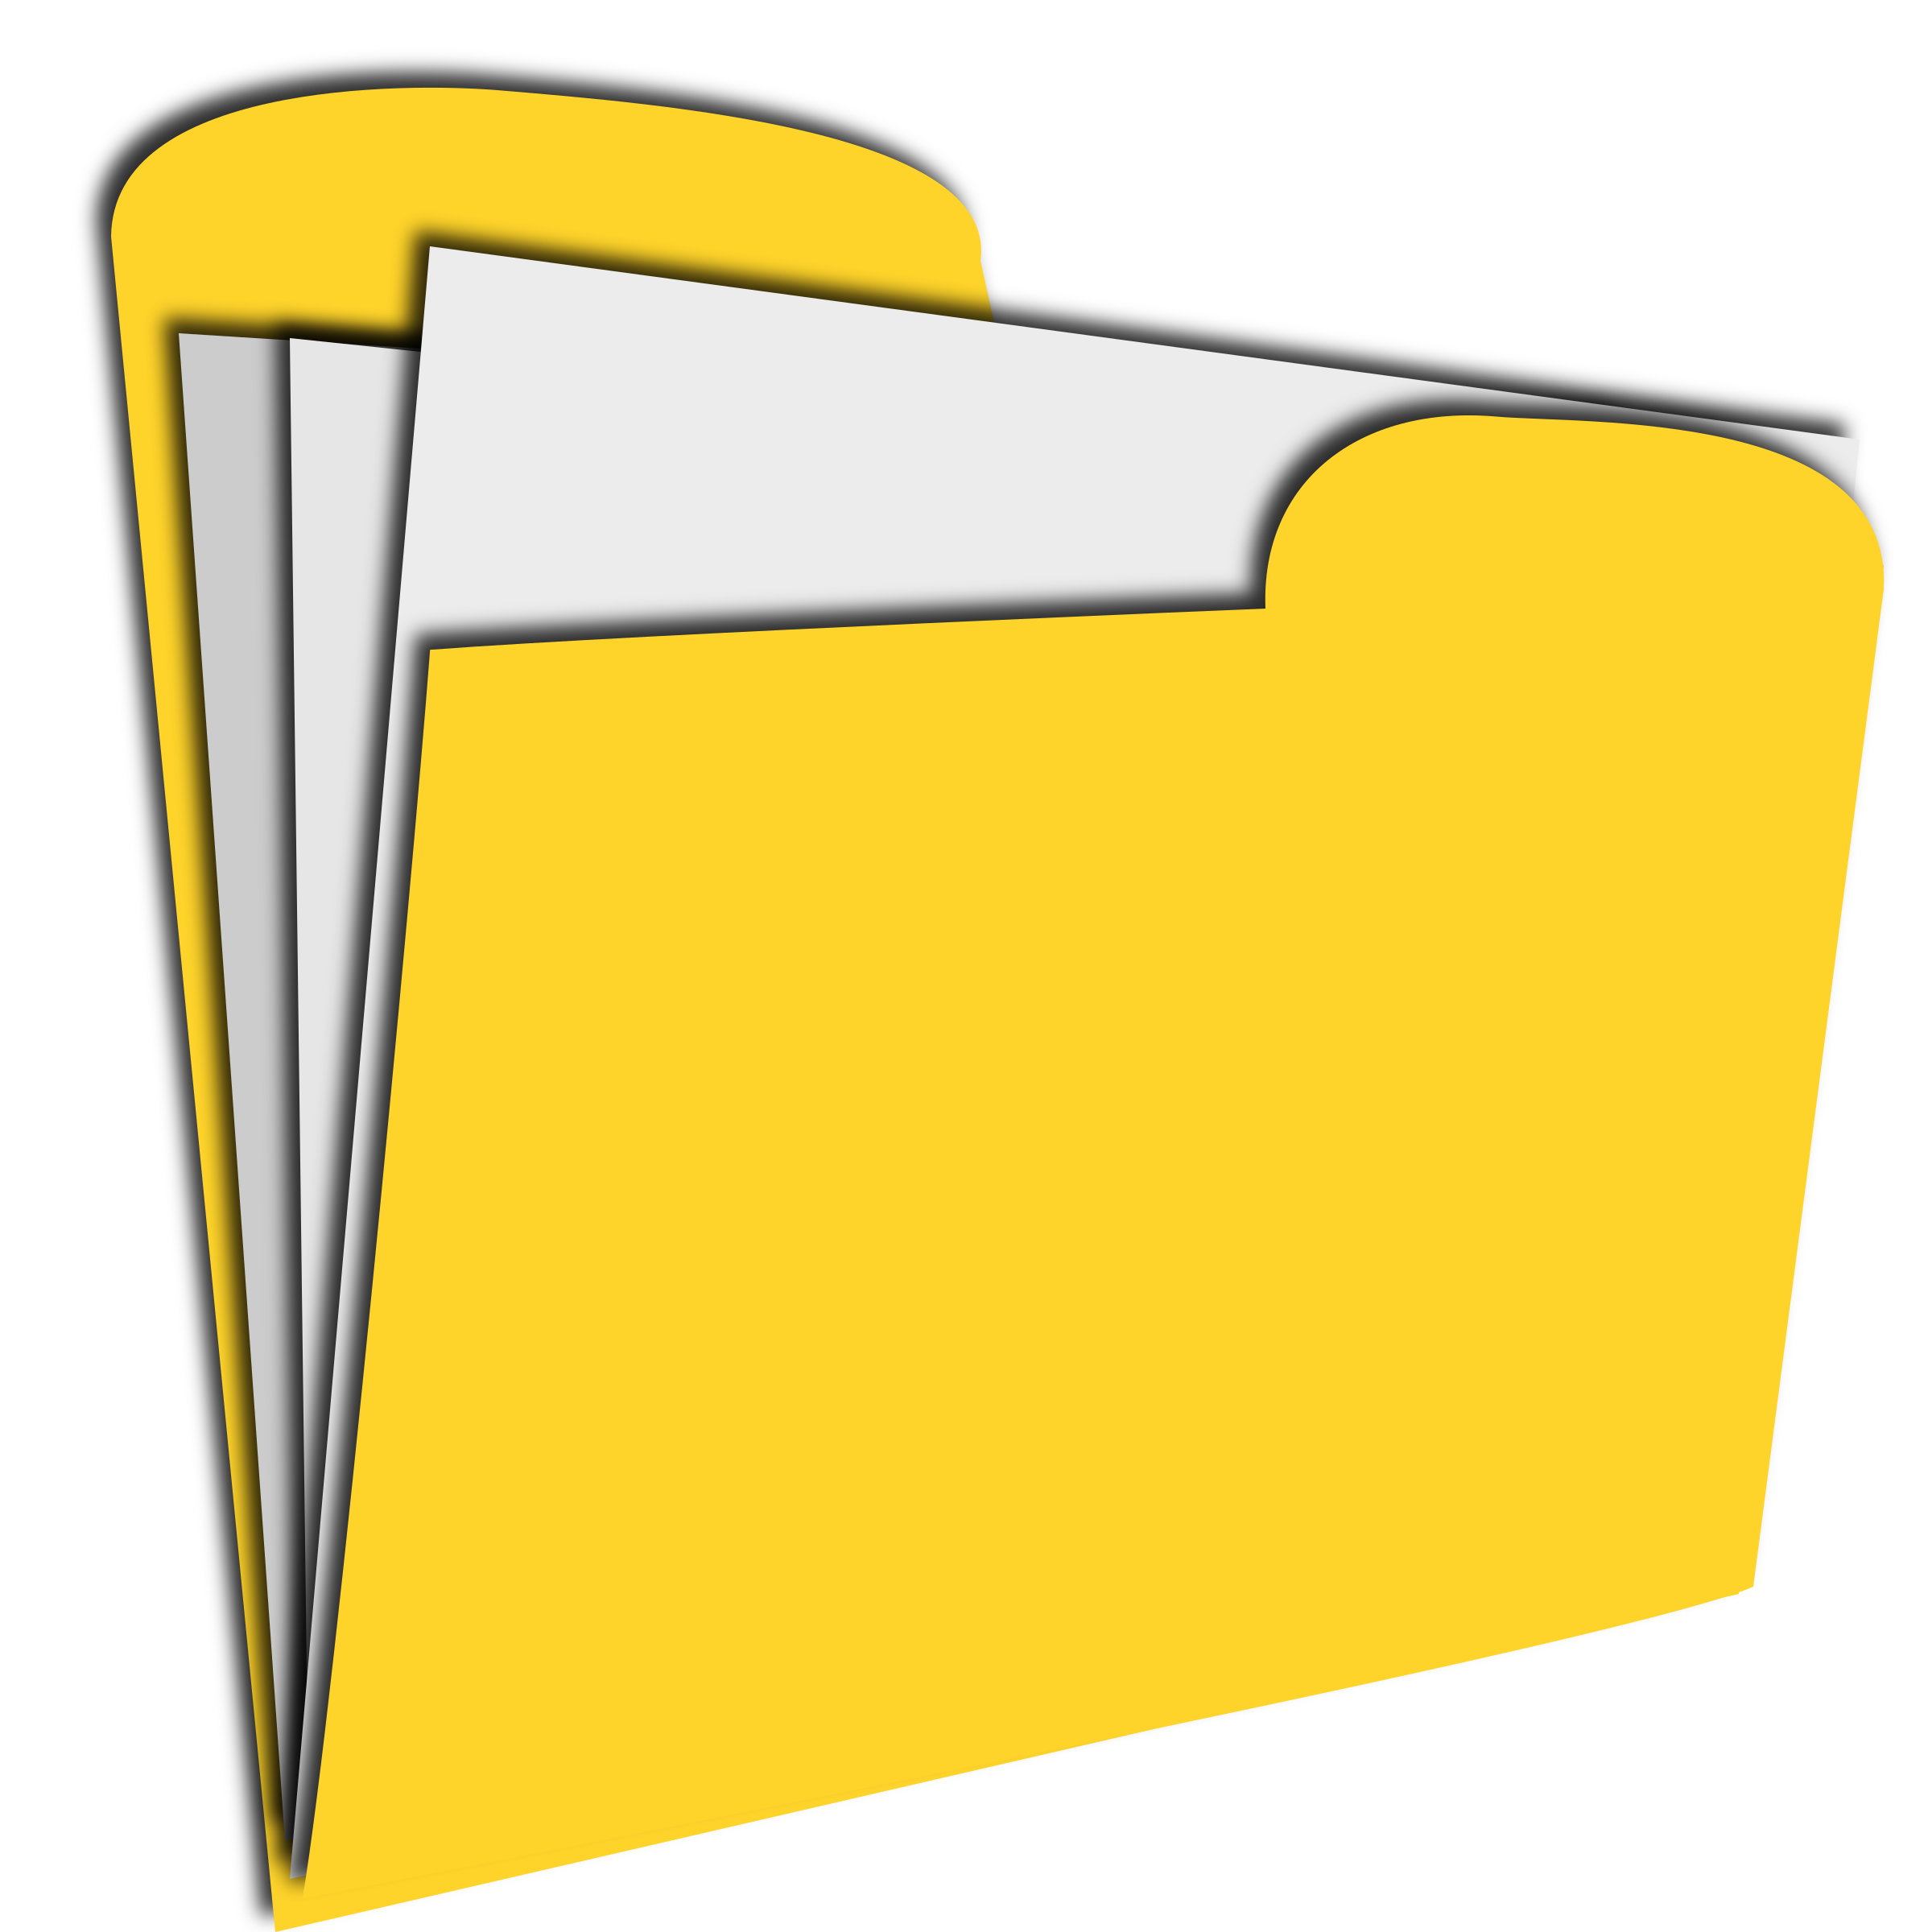 Document cliparts.